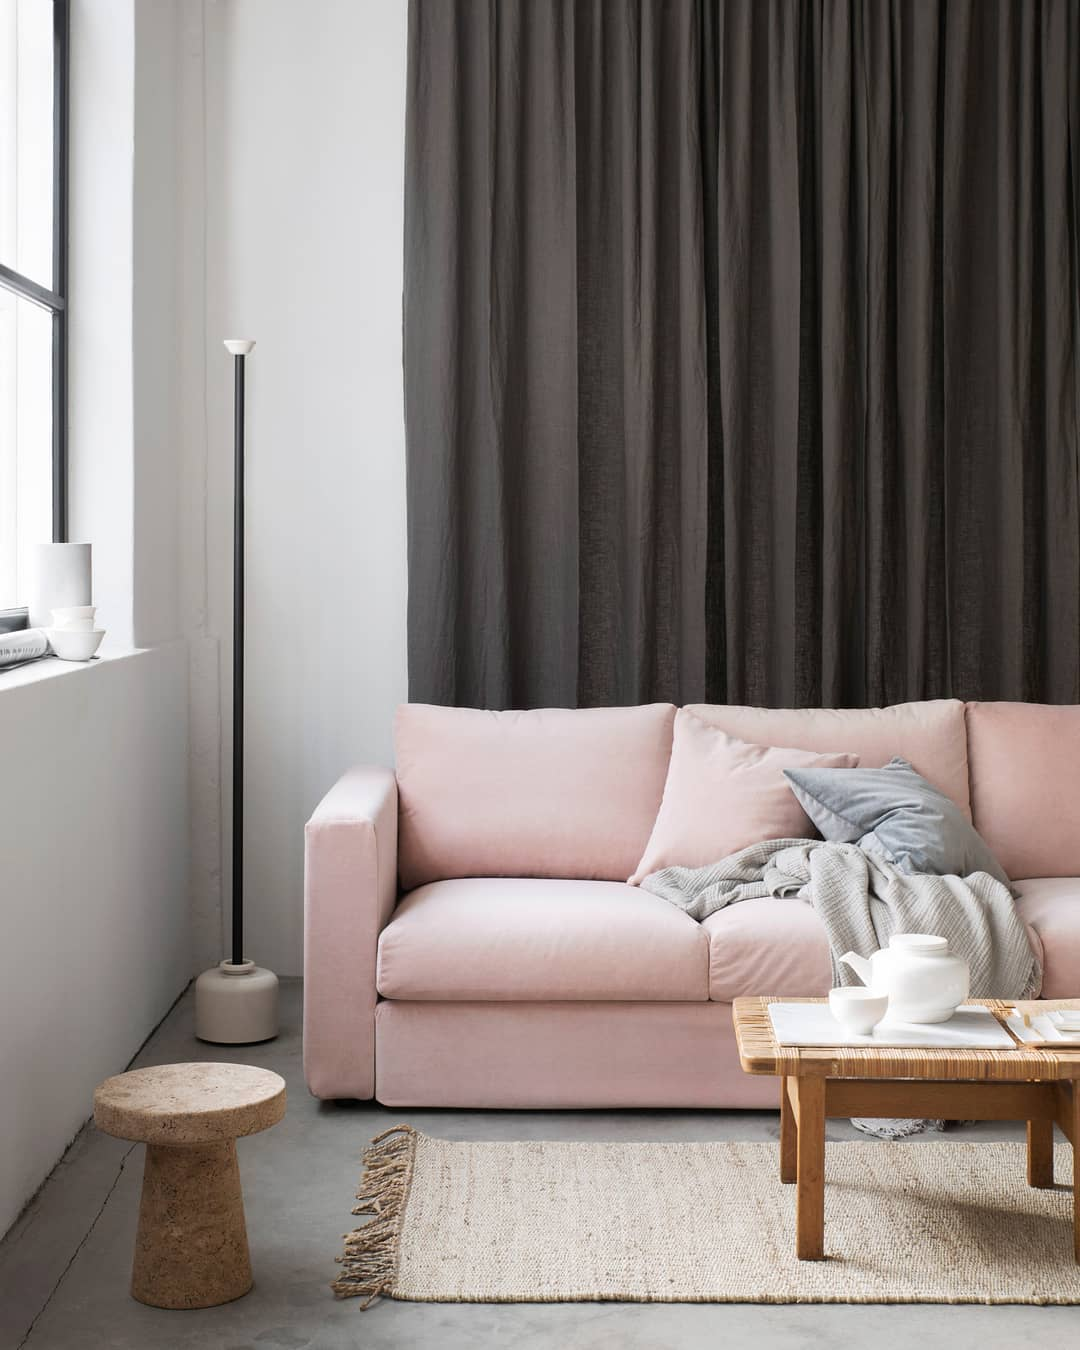 Ikea Sofa Upgrades How Furniture Makers Are Catering To Millennials